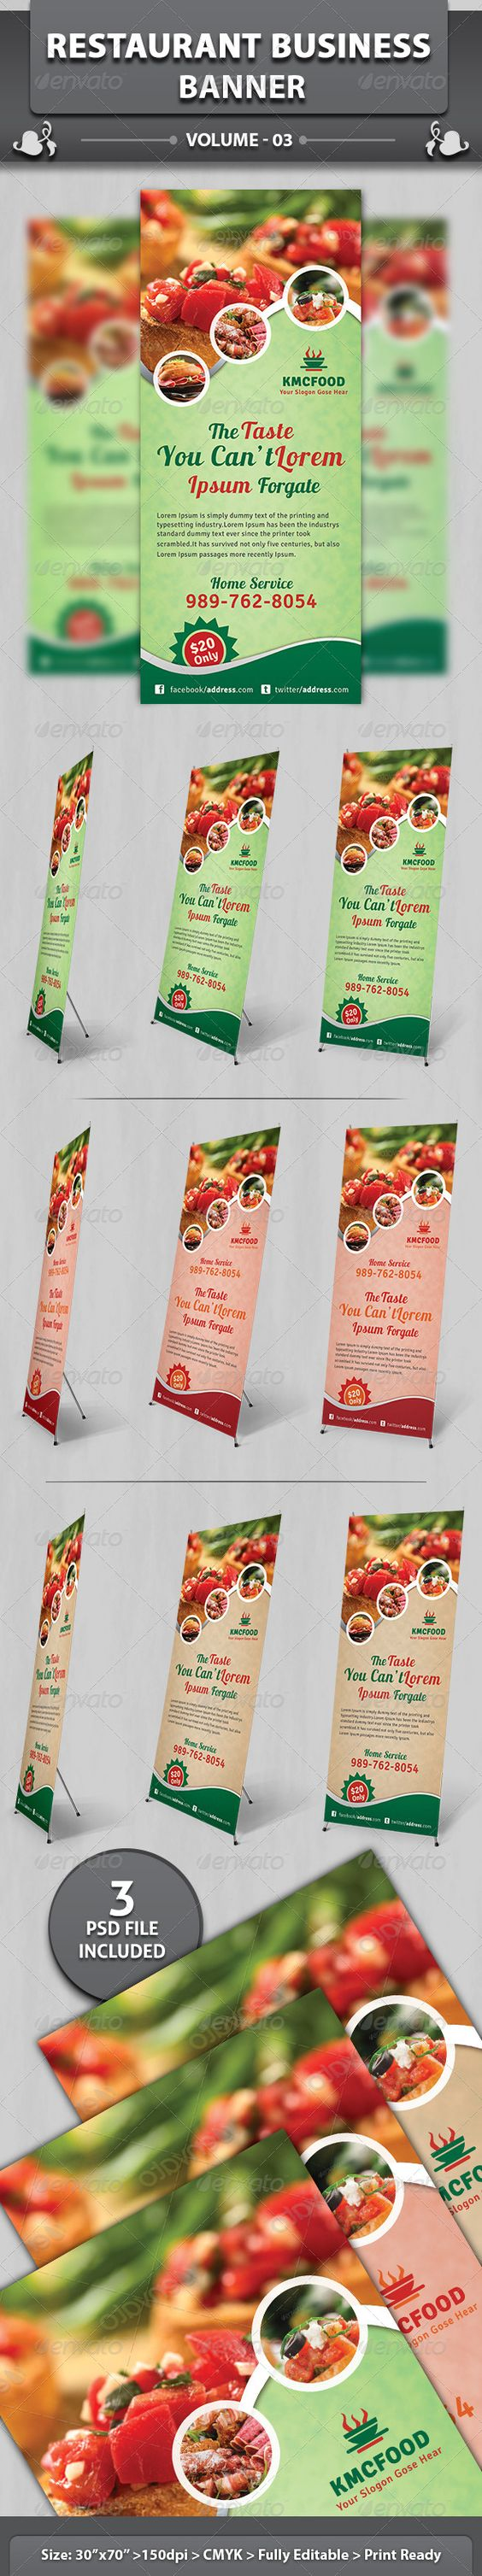 Restaurant Business Banner | Volume 3